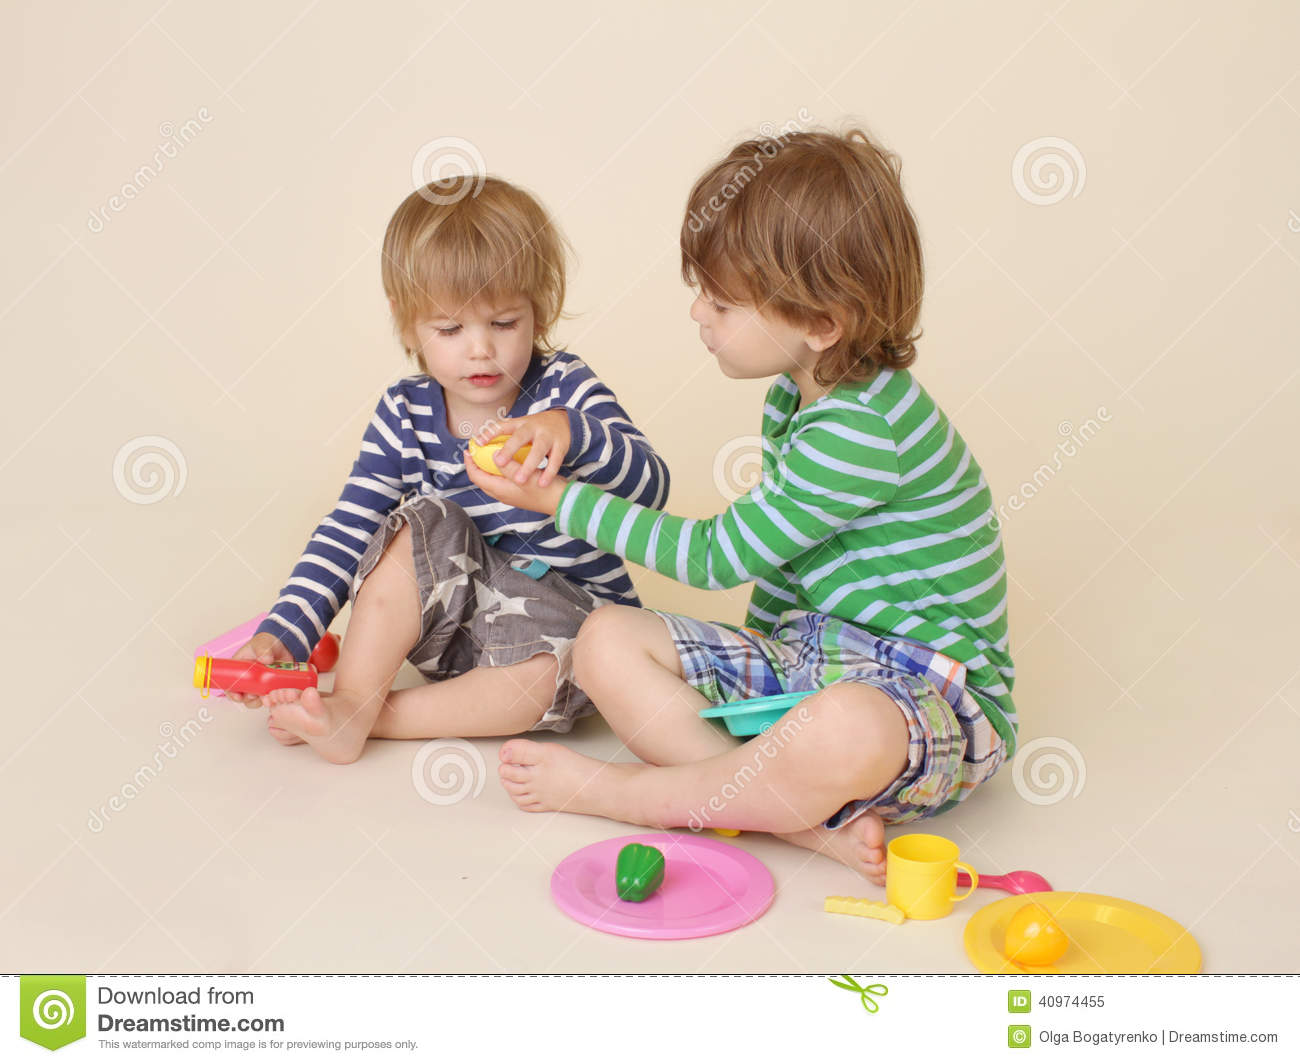 Children Sharing Pretend Food Stock Image - Image: 40974455